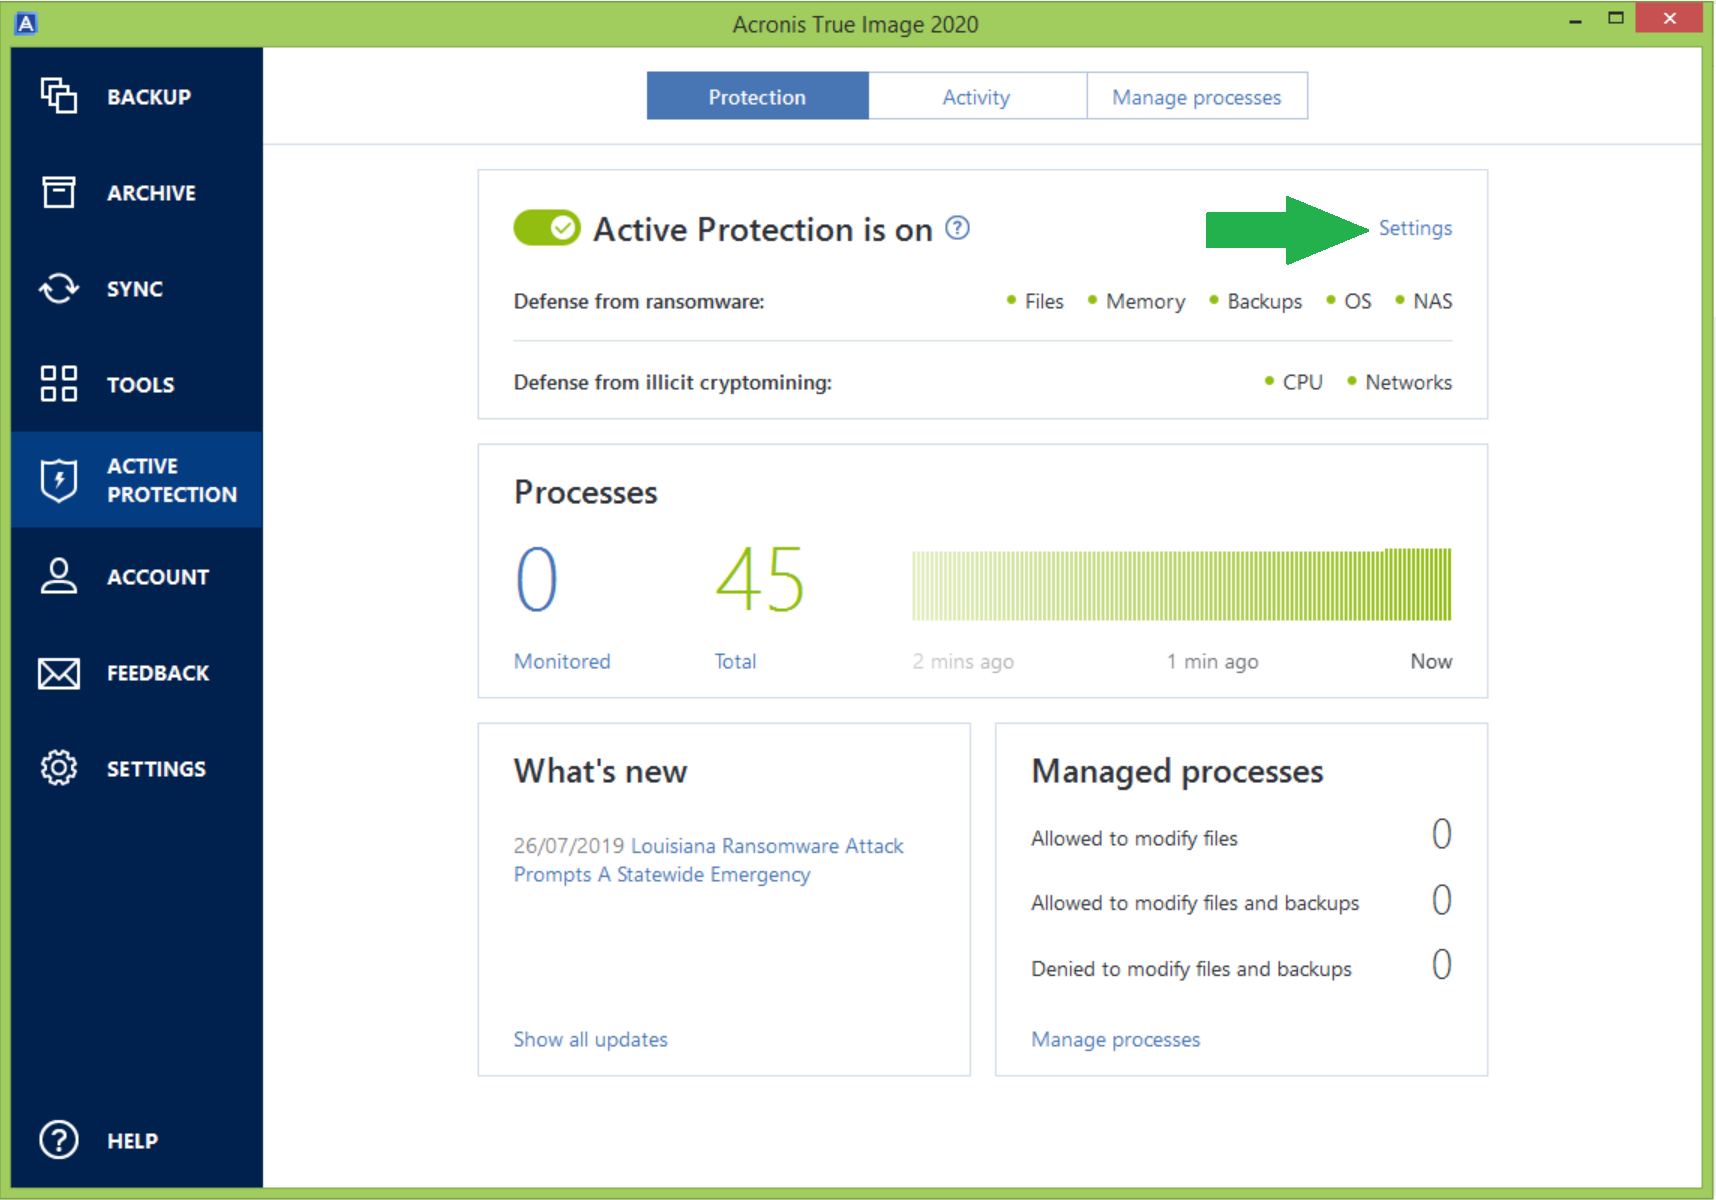 Acronis True Image: how to disable Active Protection in